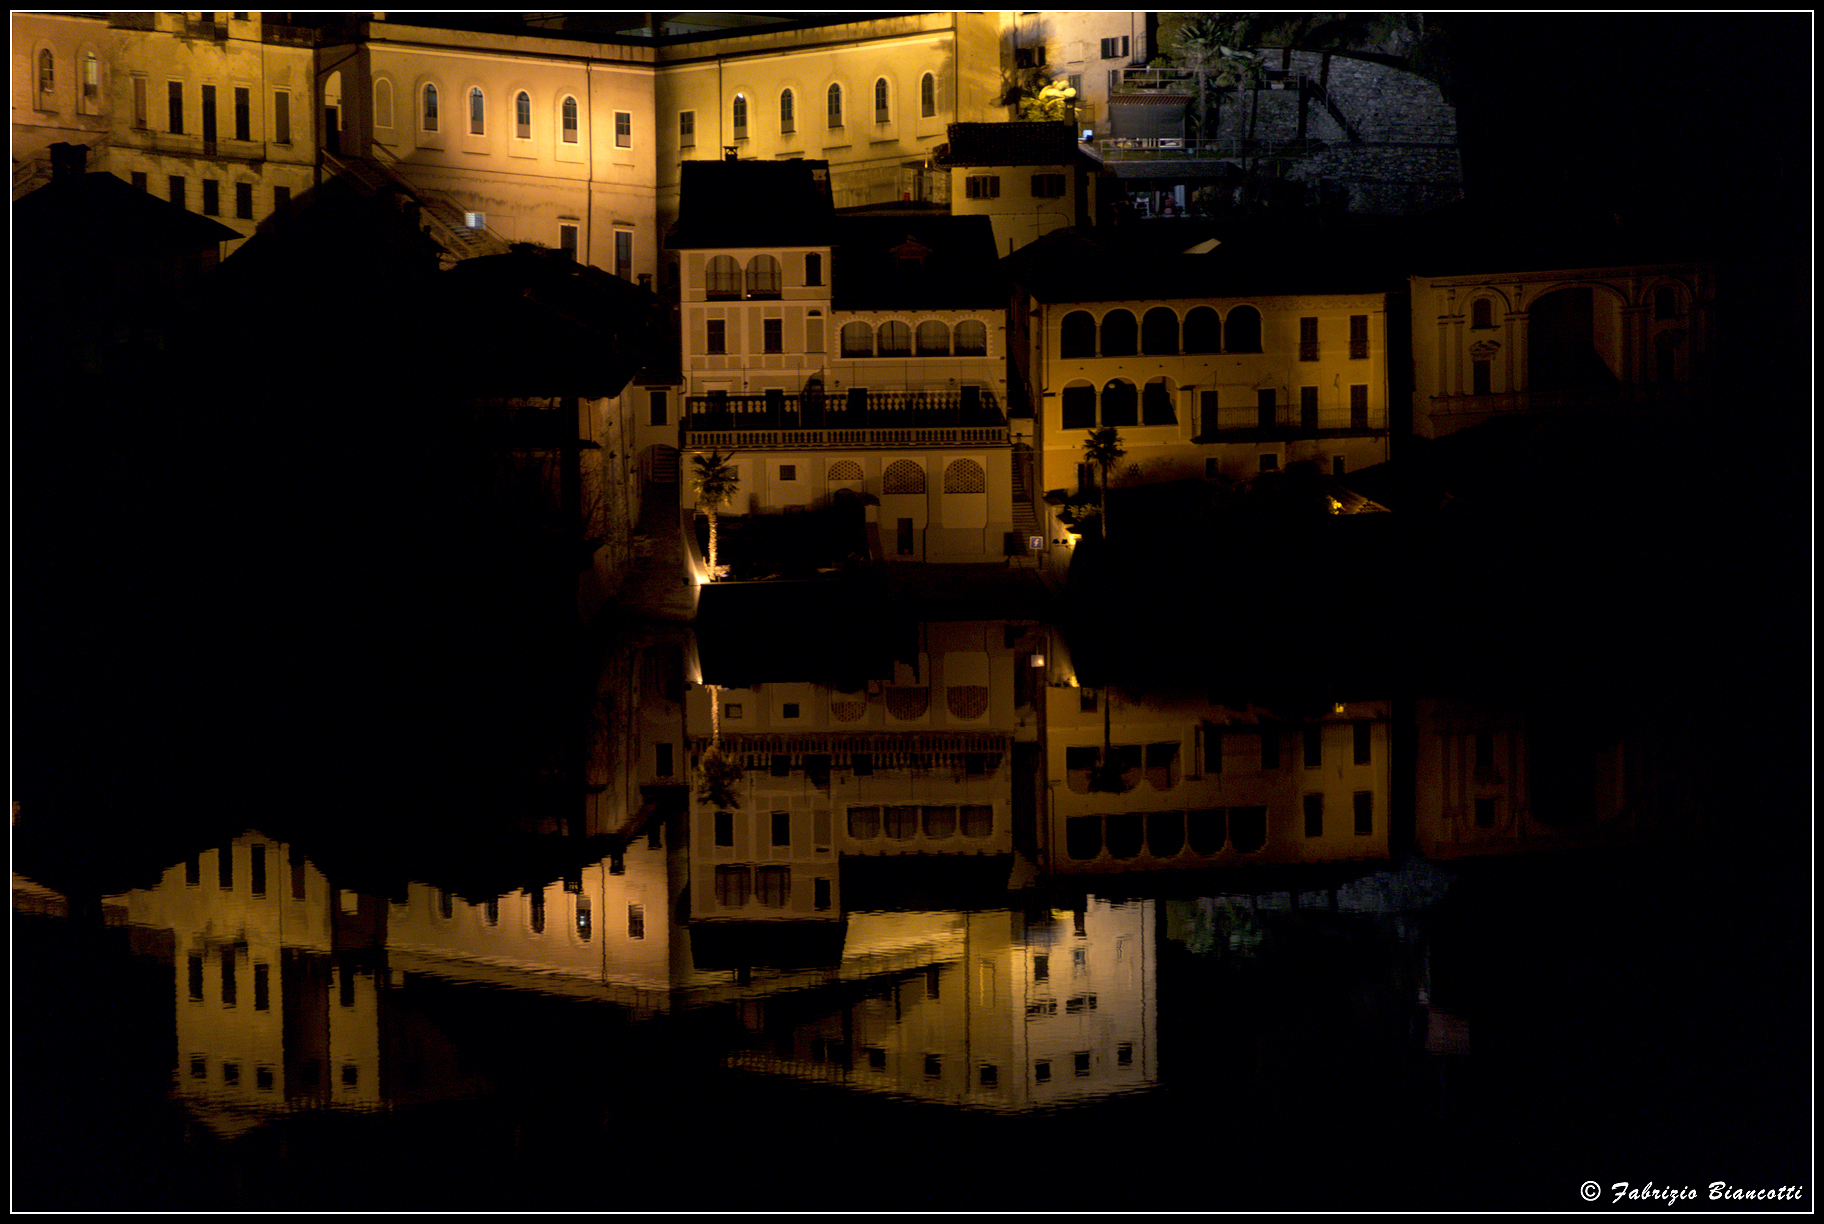 Like a mirror in the night...